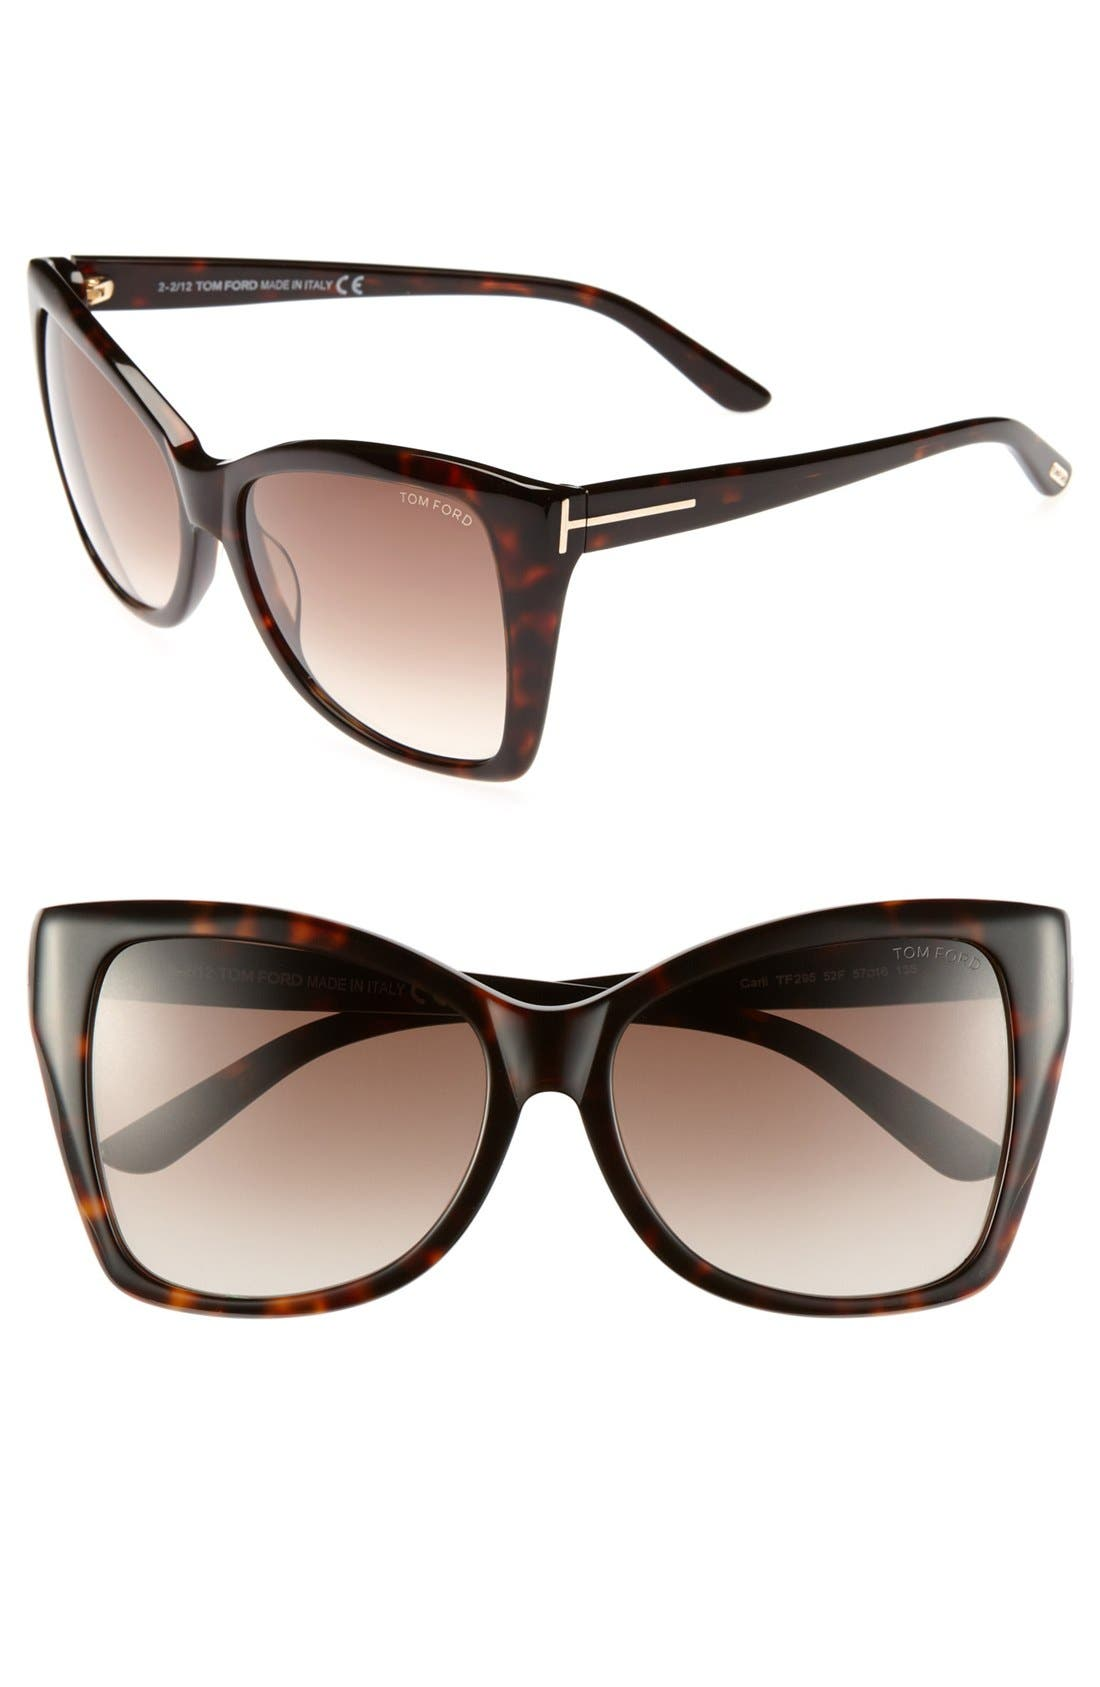 Main Image - Tom Ford 'Carli' 57mm Sunglasses